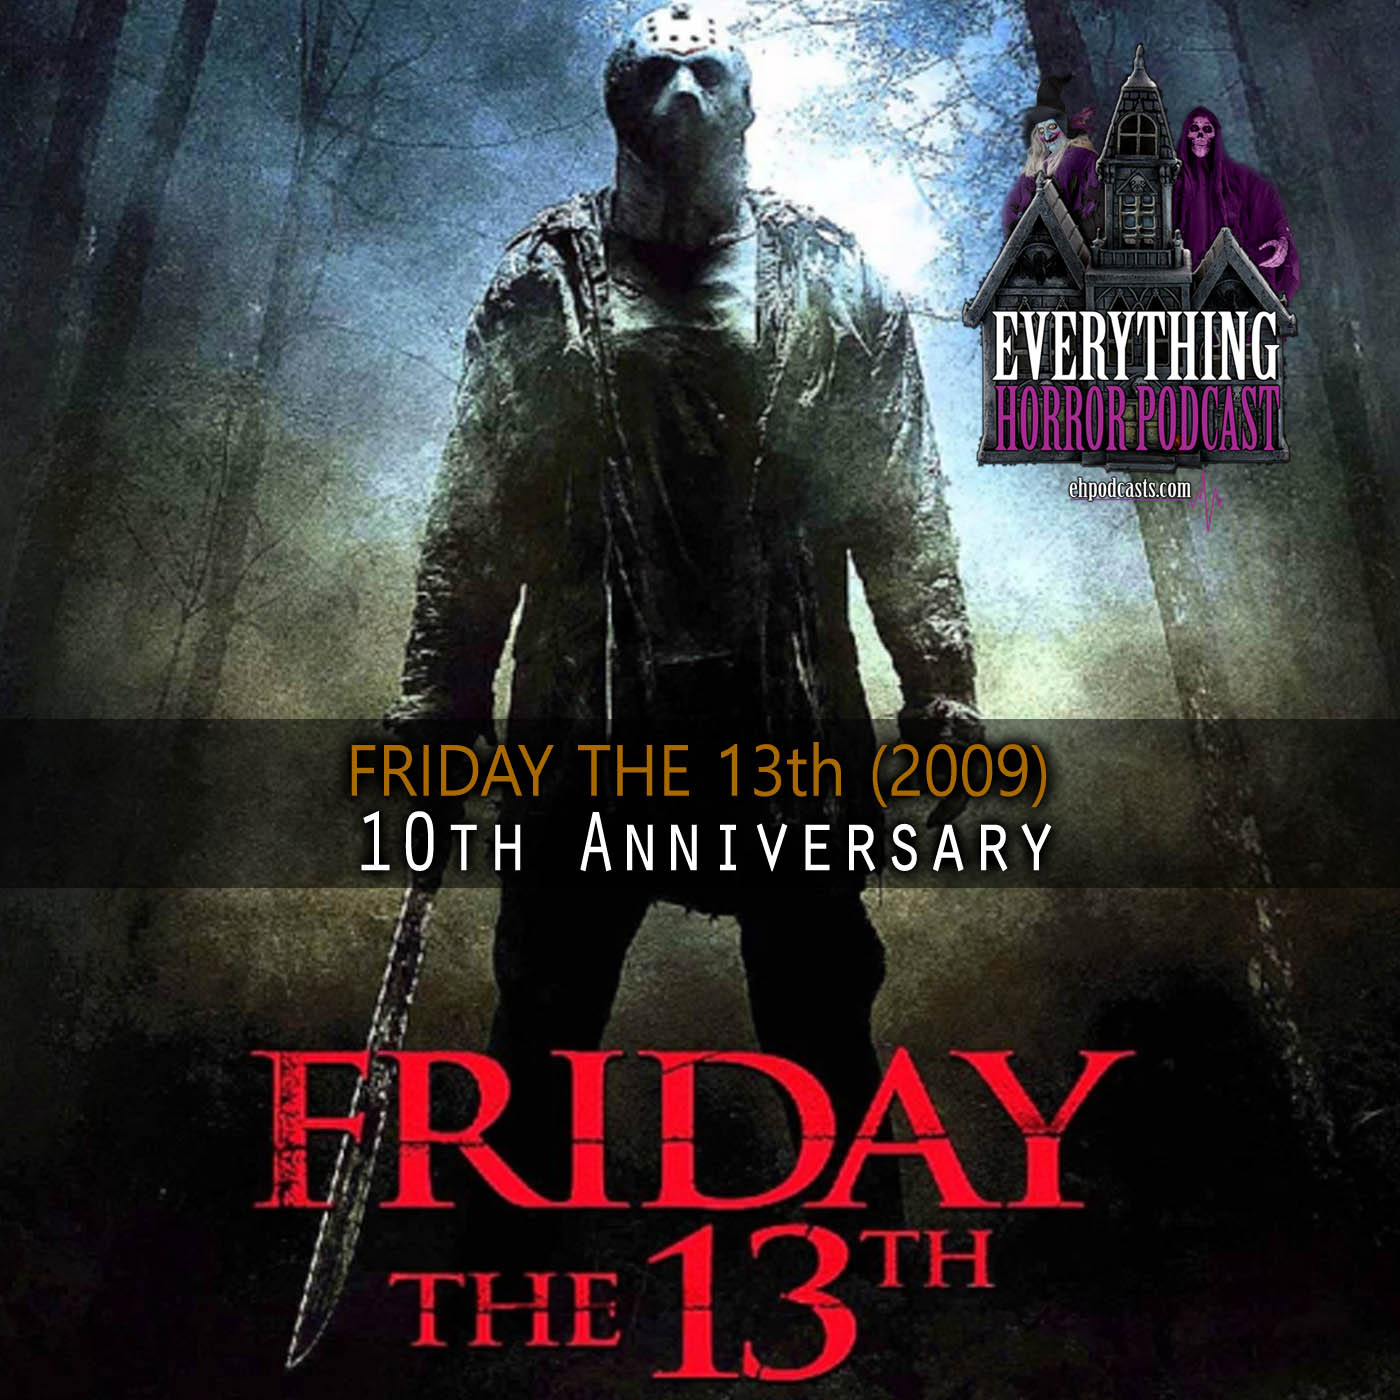 Friday the 13th (2009) | 10th Anniversary